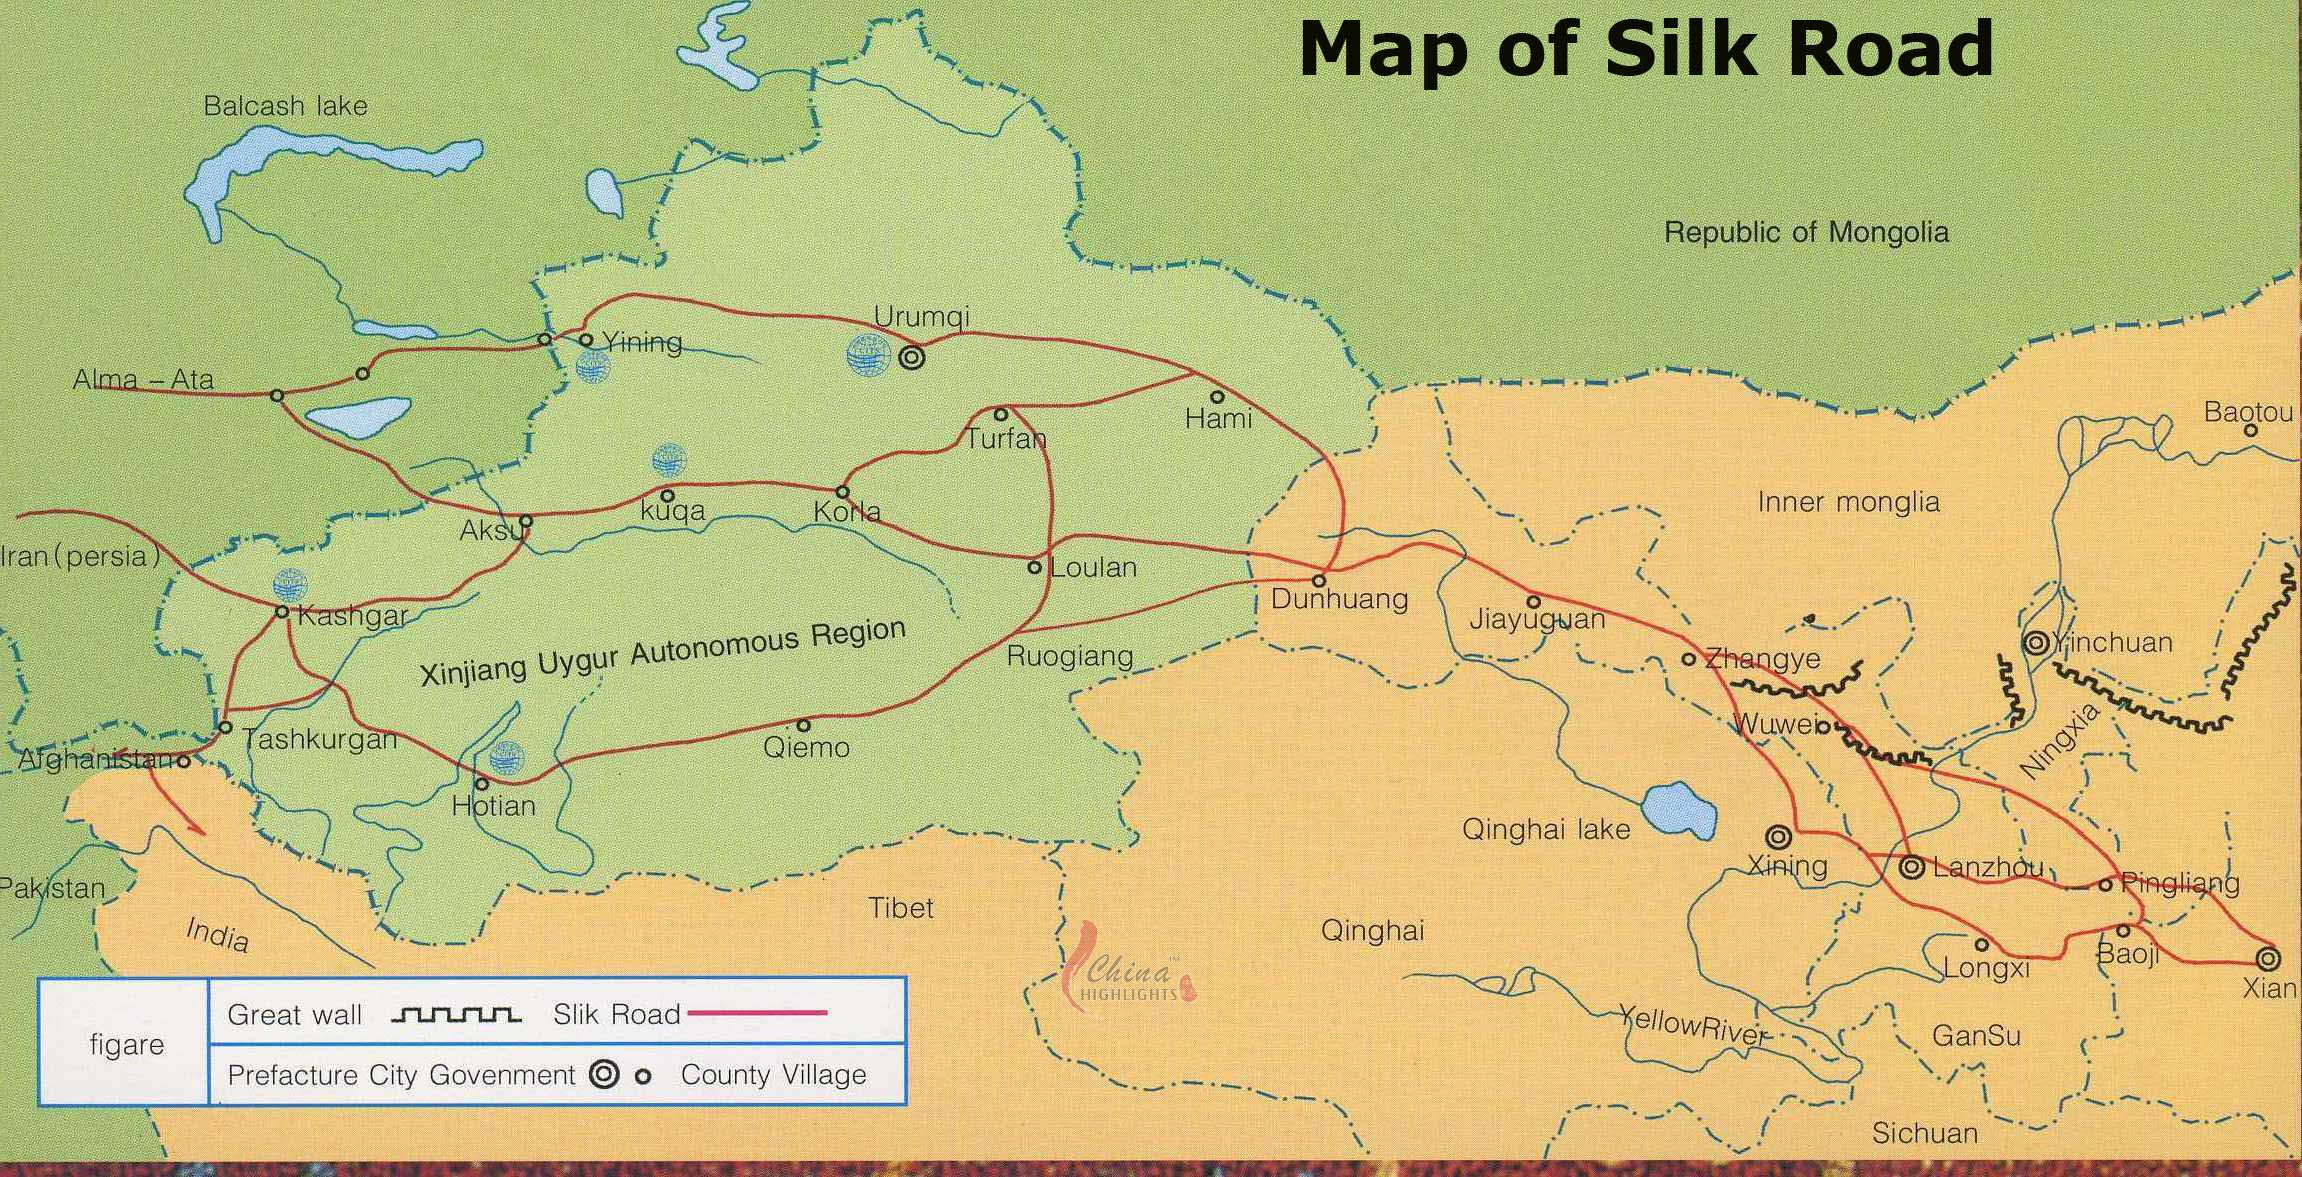 Map of Silk Road